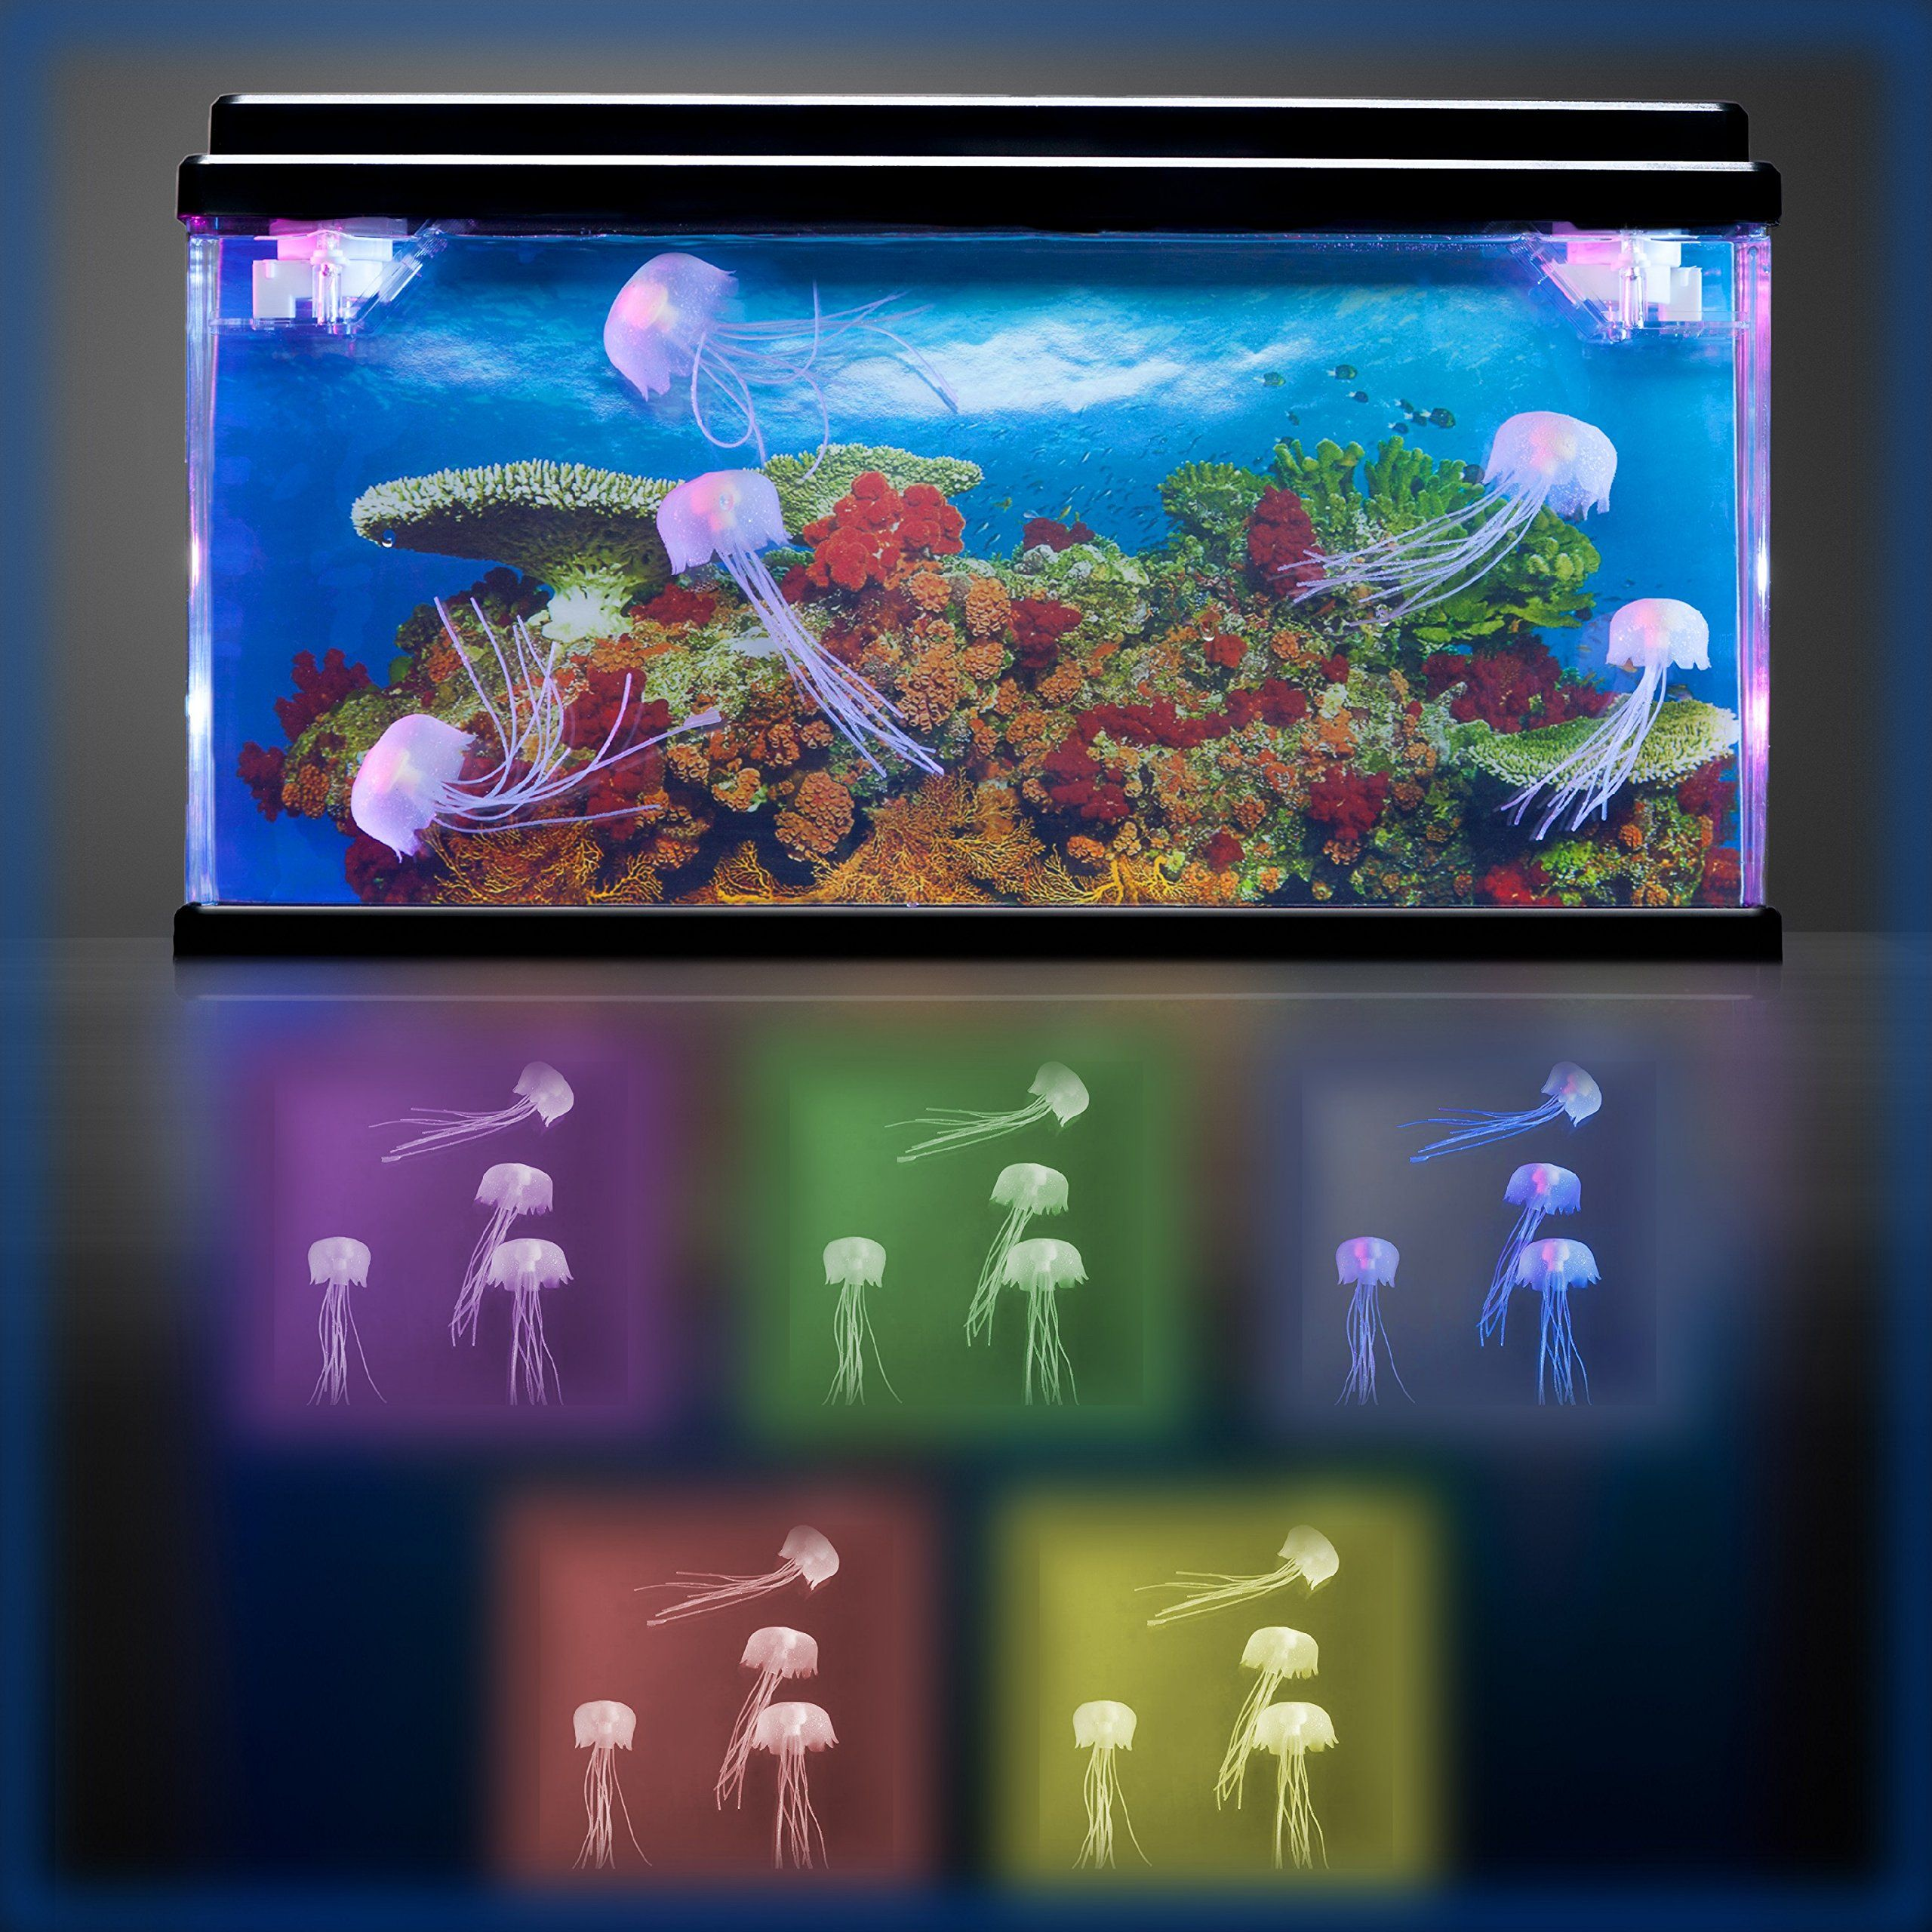 Moving Jelly Fish Tank with LED lights 3D backing STUNNING